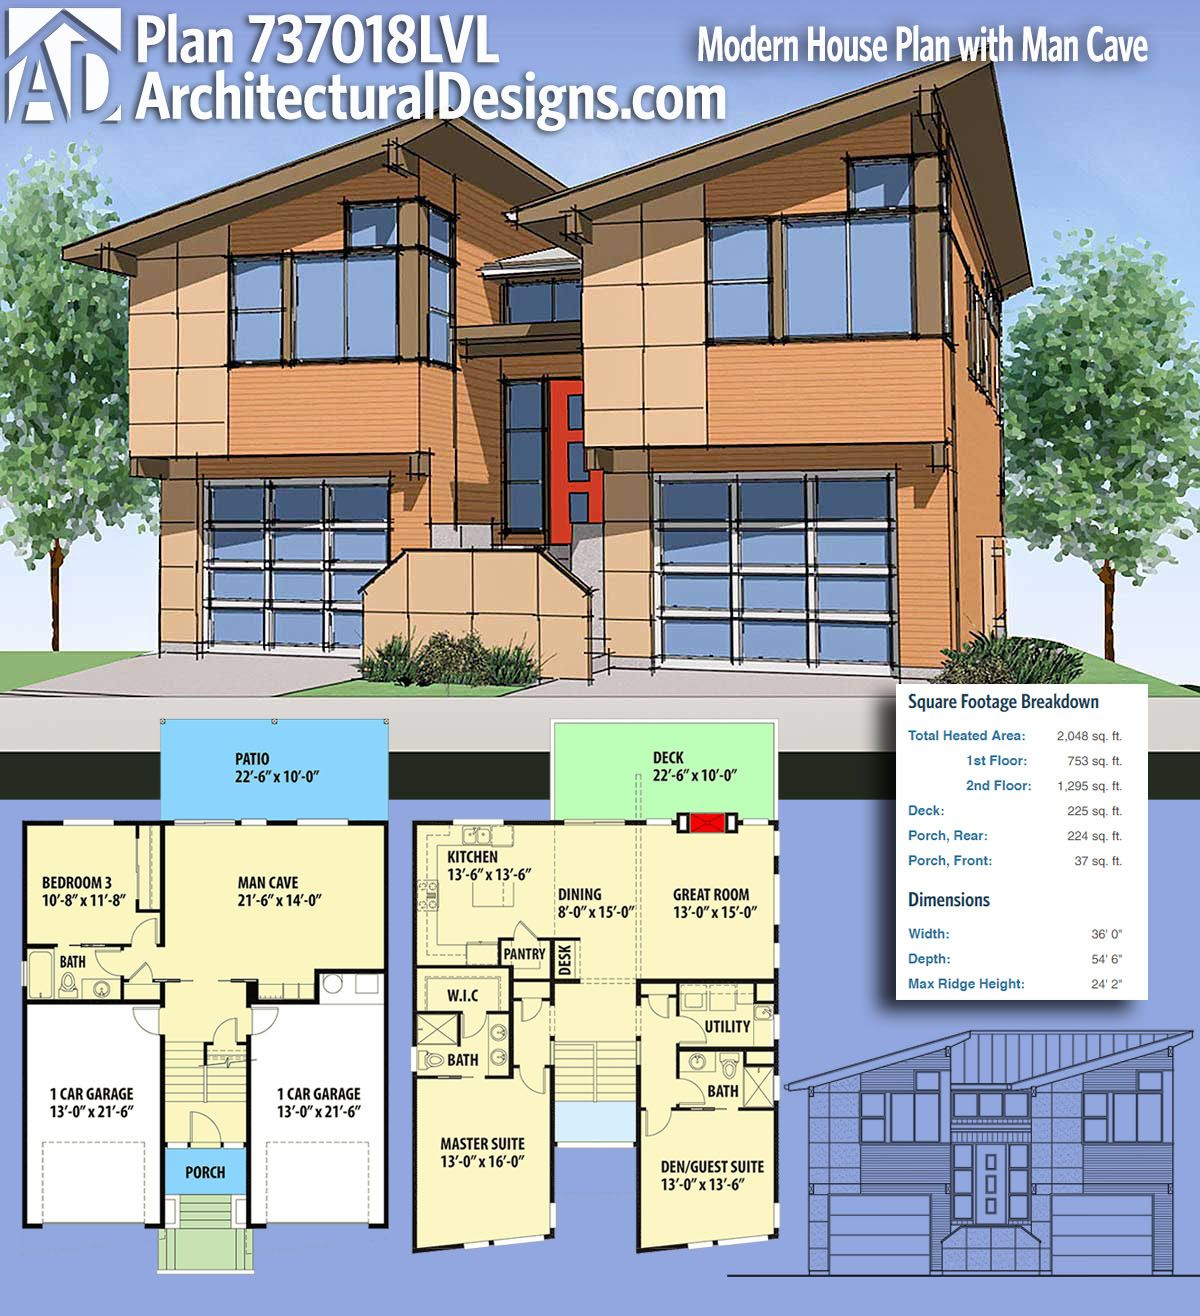 Plan 737018lvl Modern House Plan With Man Cave Modern House Plan Architectural Design House Plans Modern House Plans